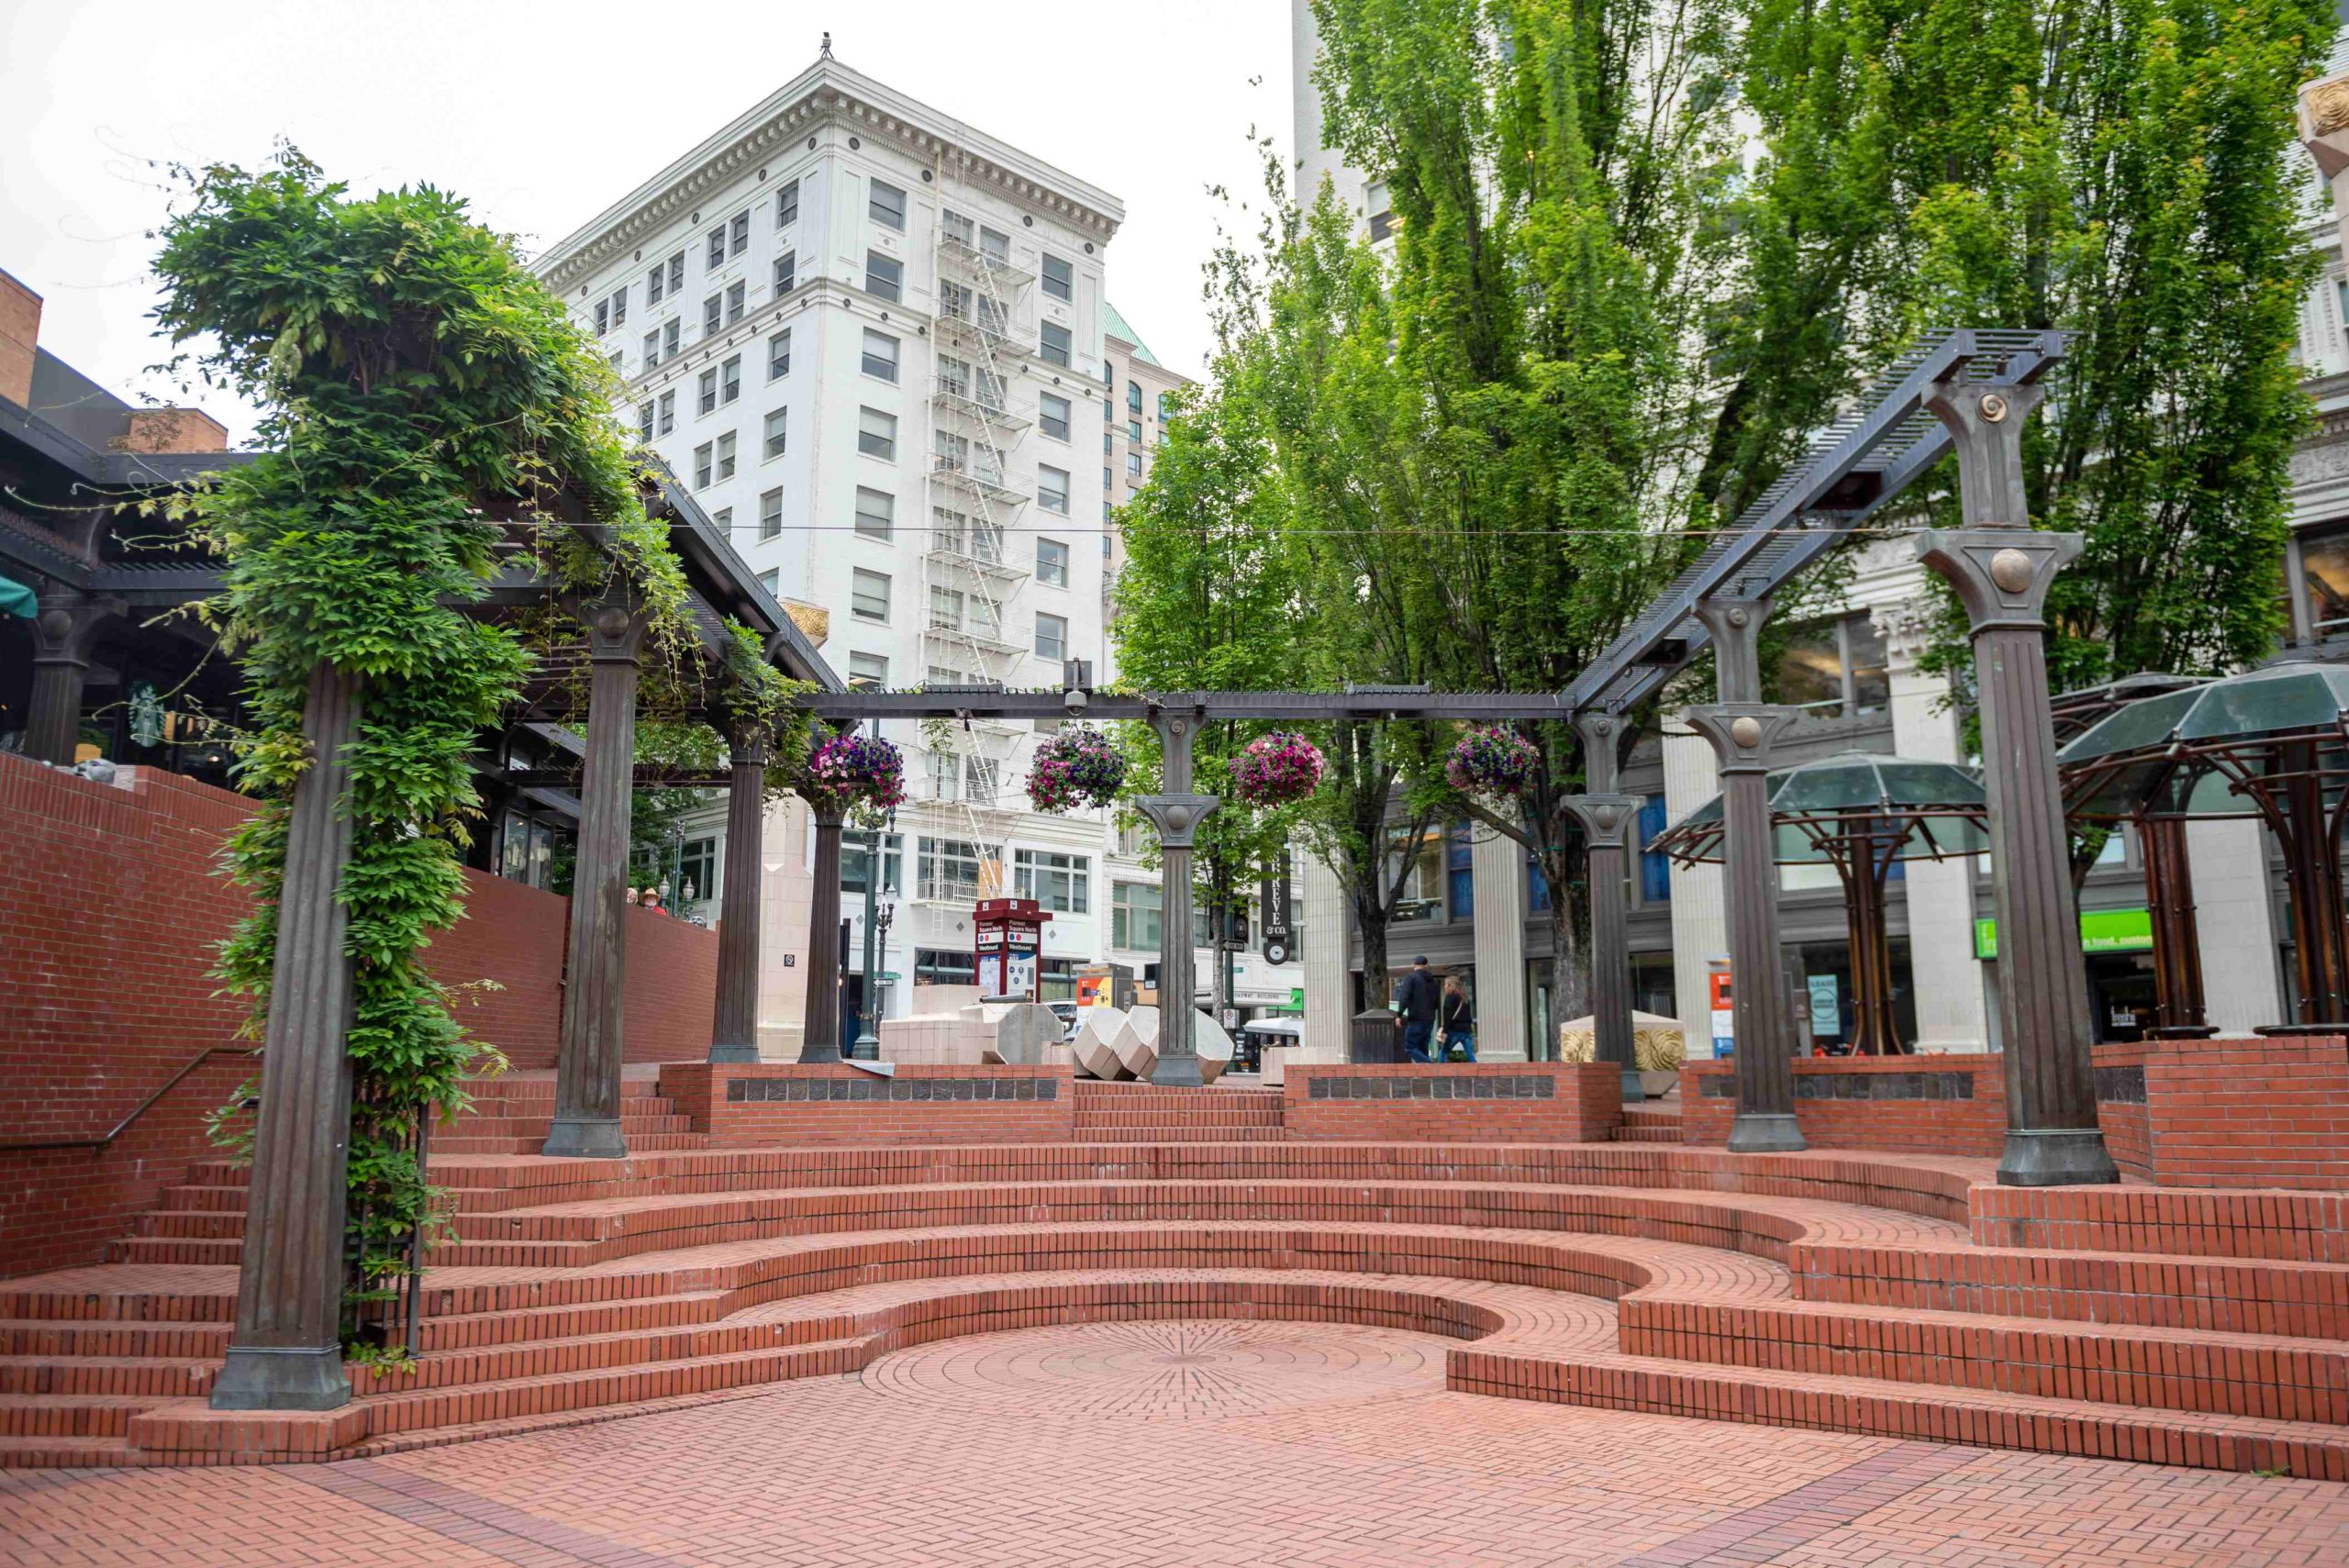 Pioneer Courthouse Square Park Updates